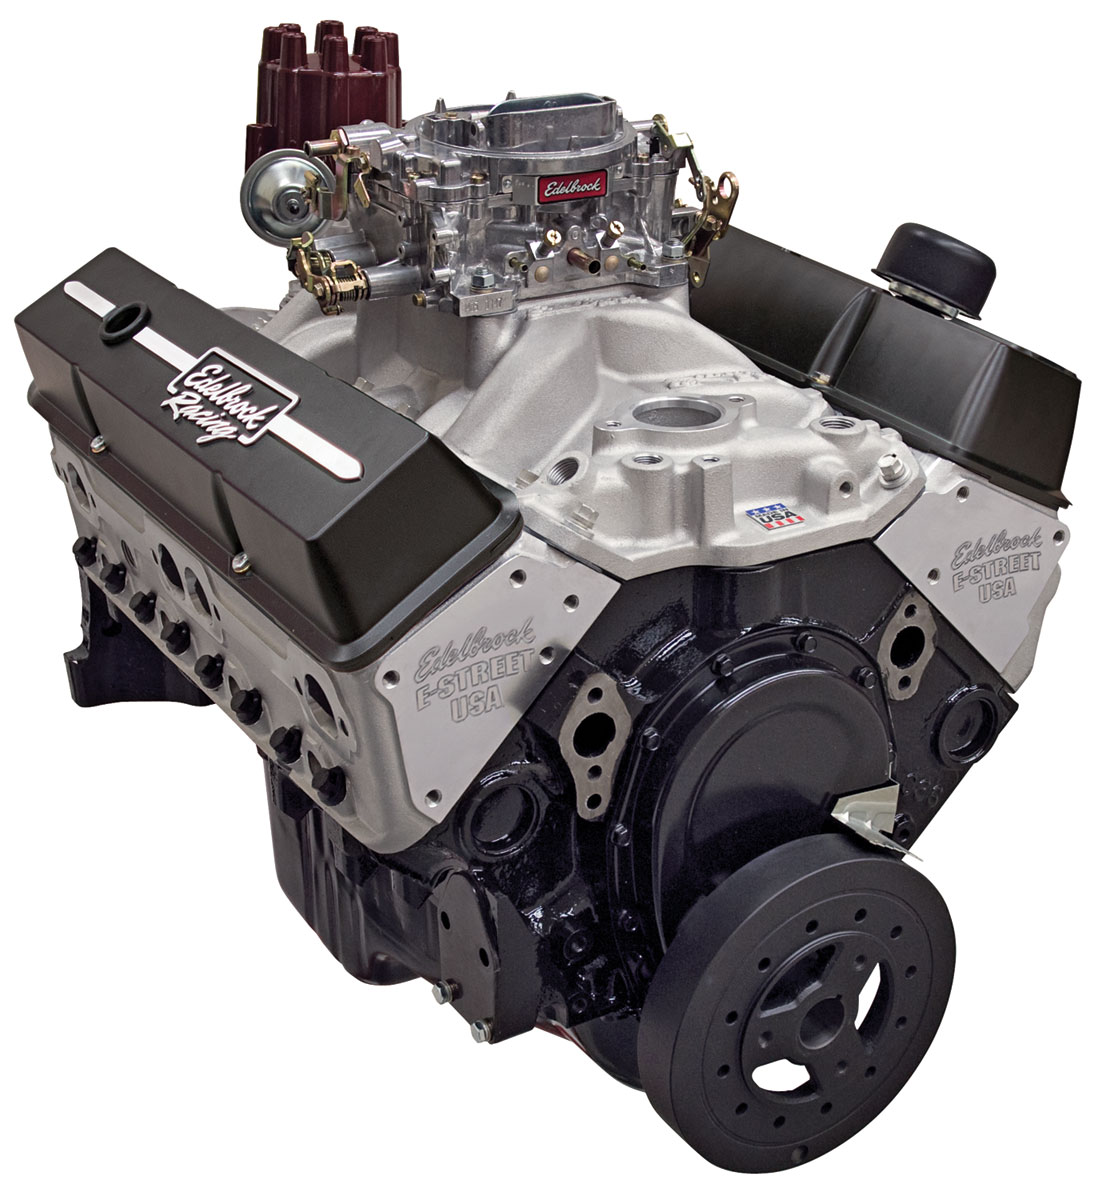 Photo of Crate Engine, Edelbrock E-Street 315 HP, Carbureted satin